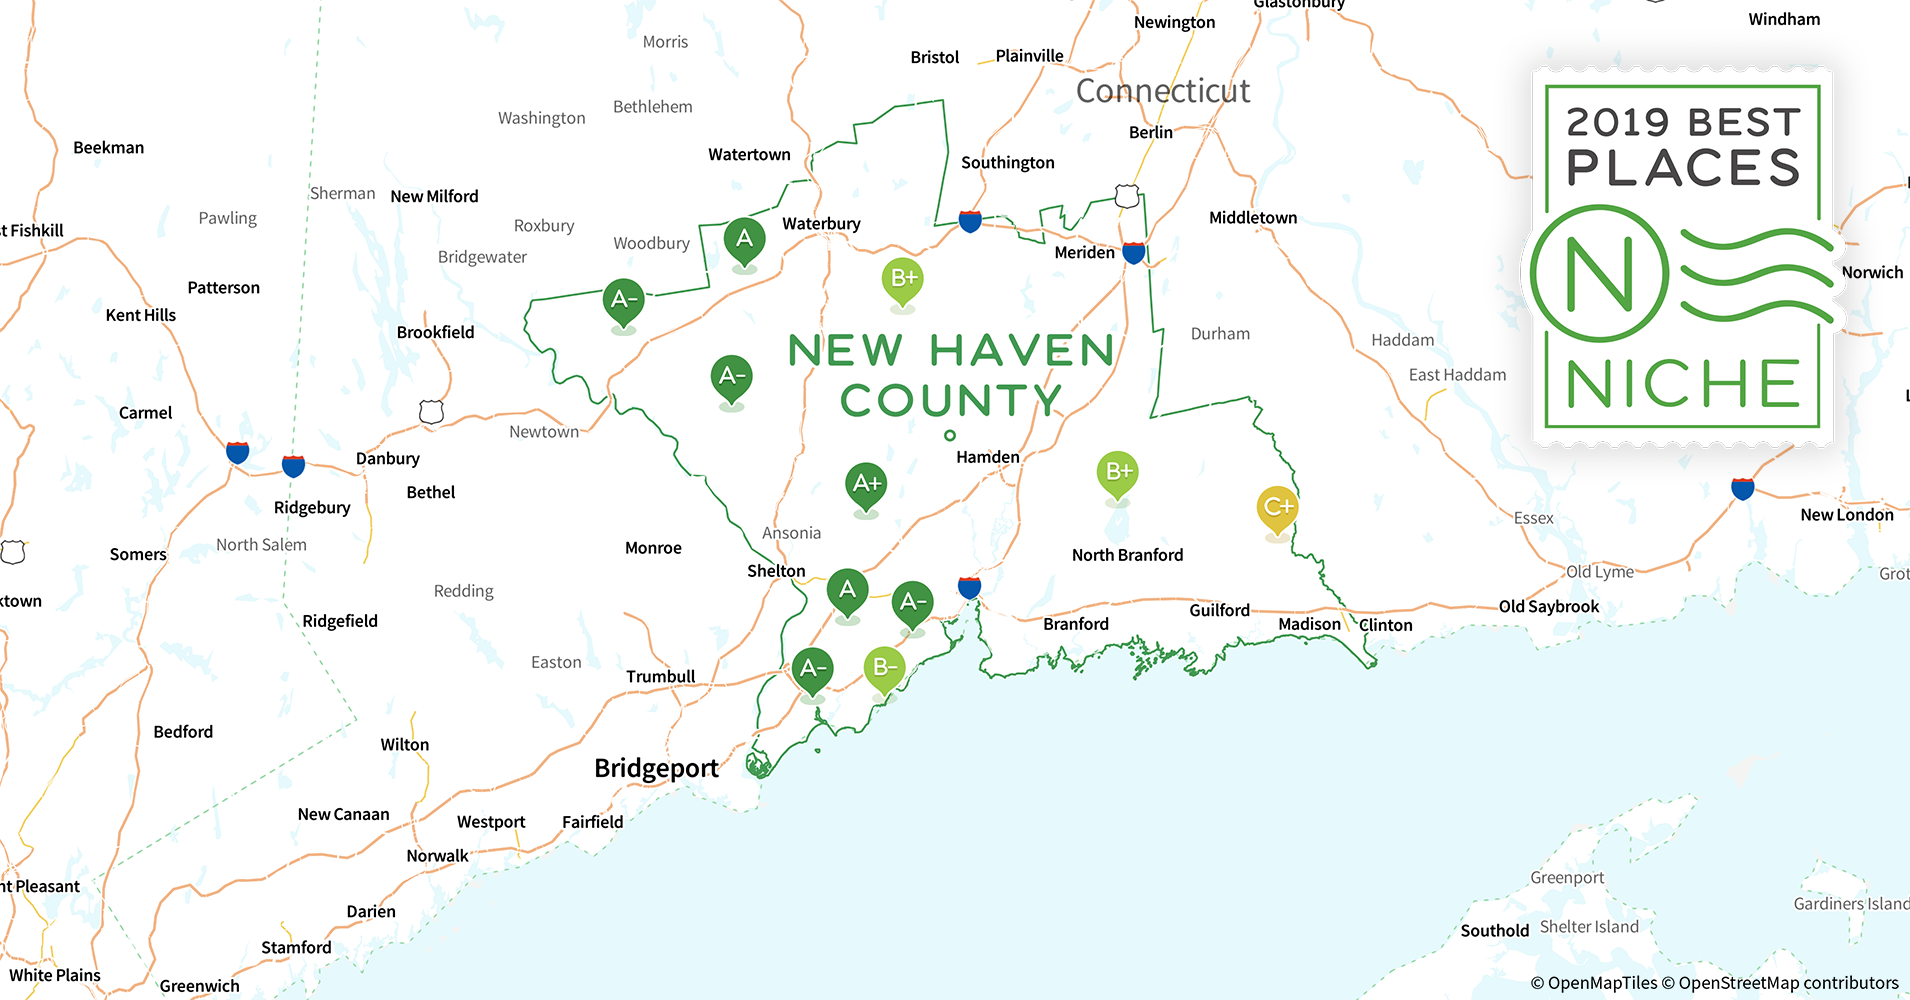 2019 Best Places to Live in New Haven County, CT - Niche